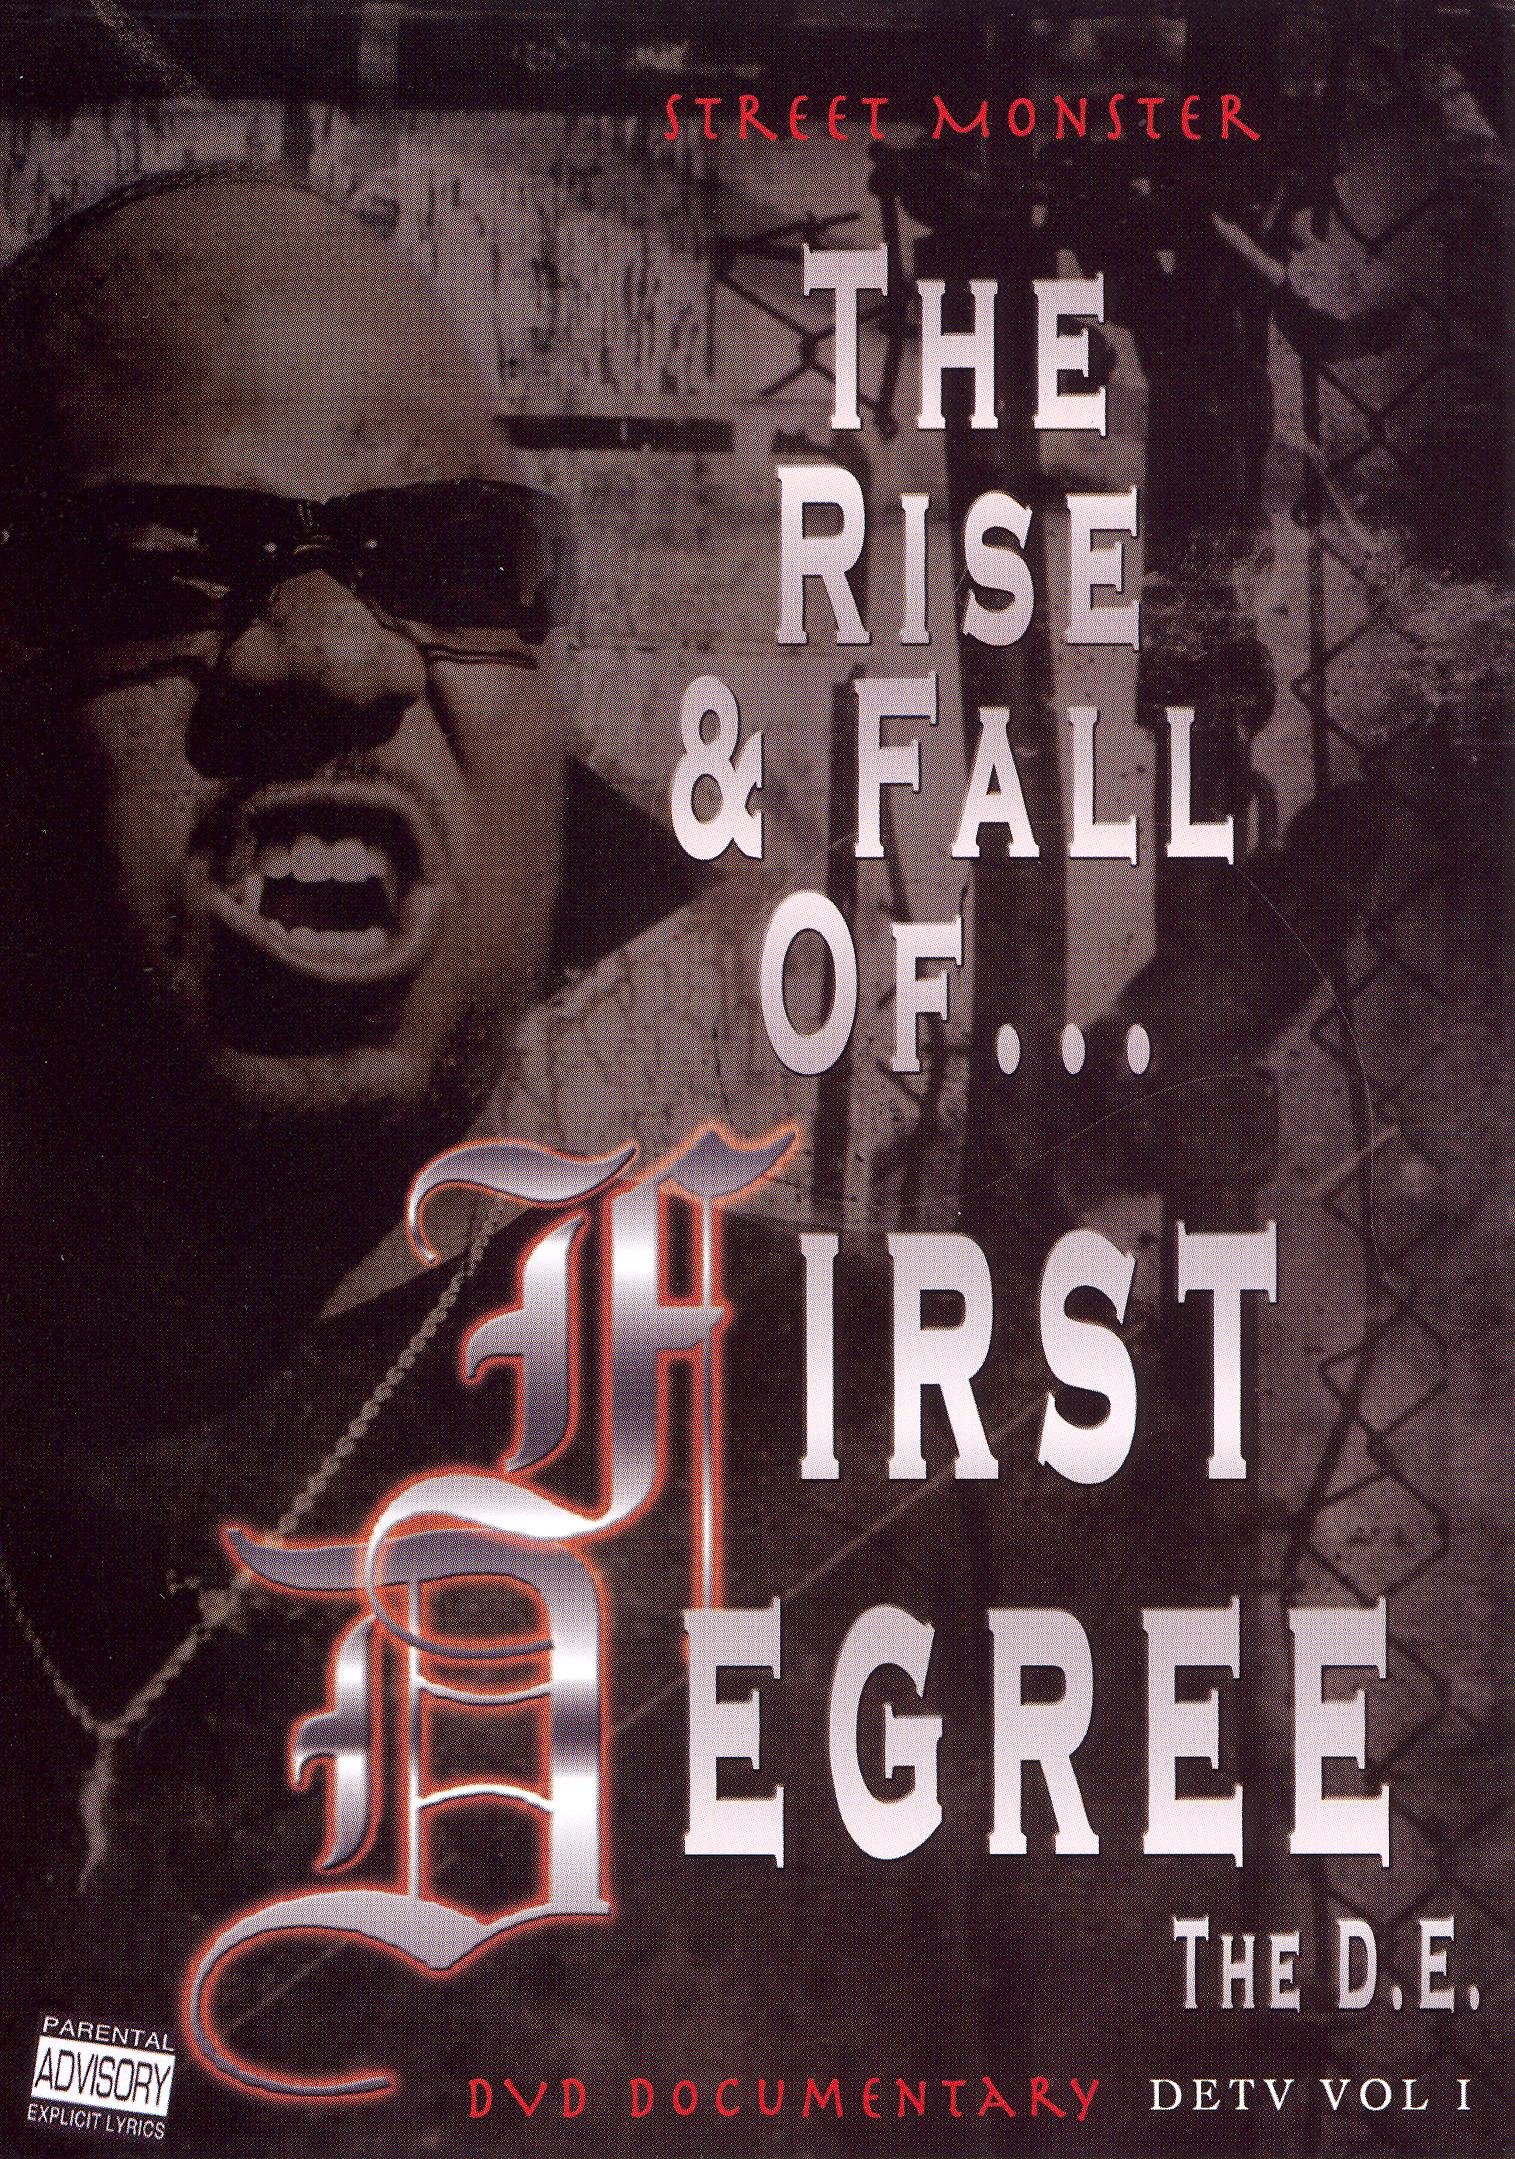 First Degree the D.E.: Street Monster - The Rise and Fall of First Degree the D.E.